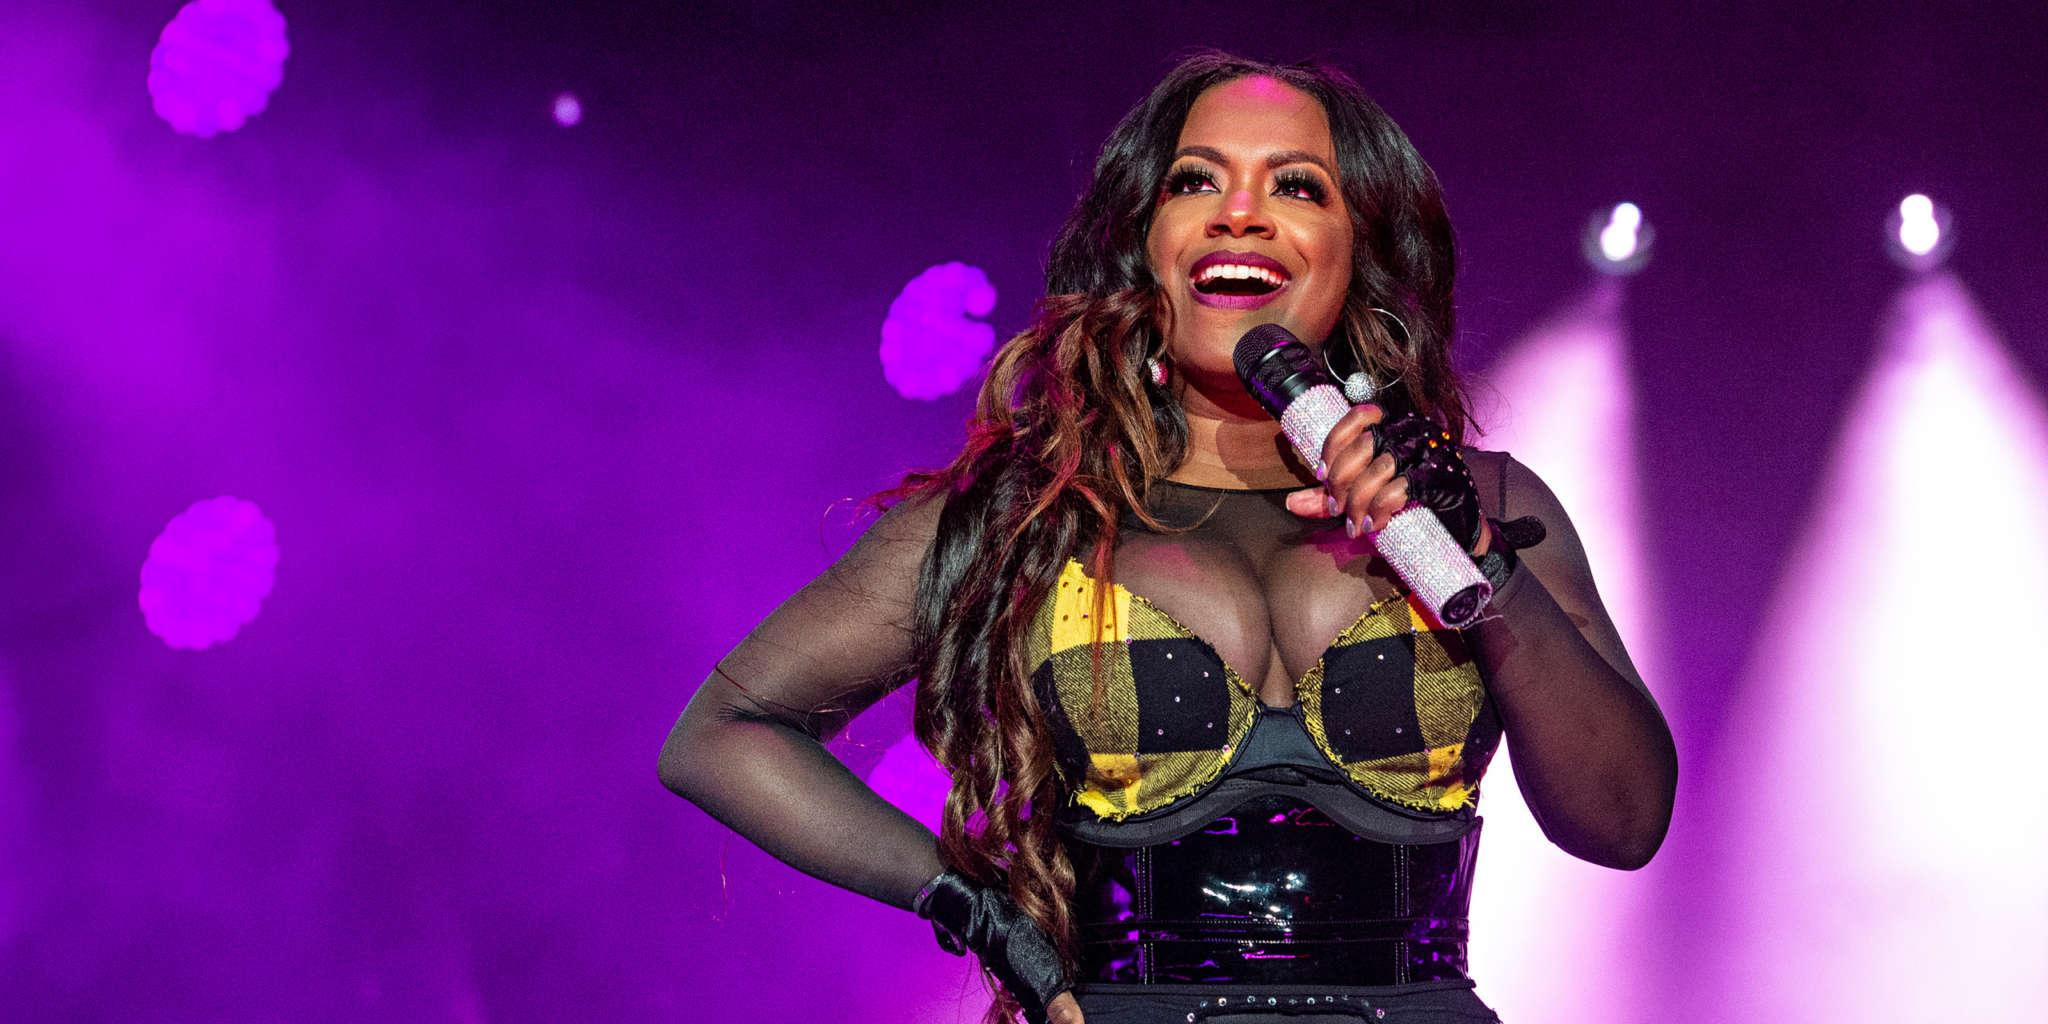 Kandi Burruss Drops New Music And Fans Are In Awe - Check Out The Video